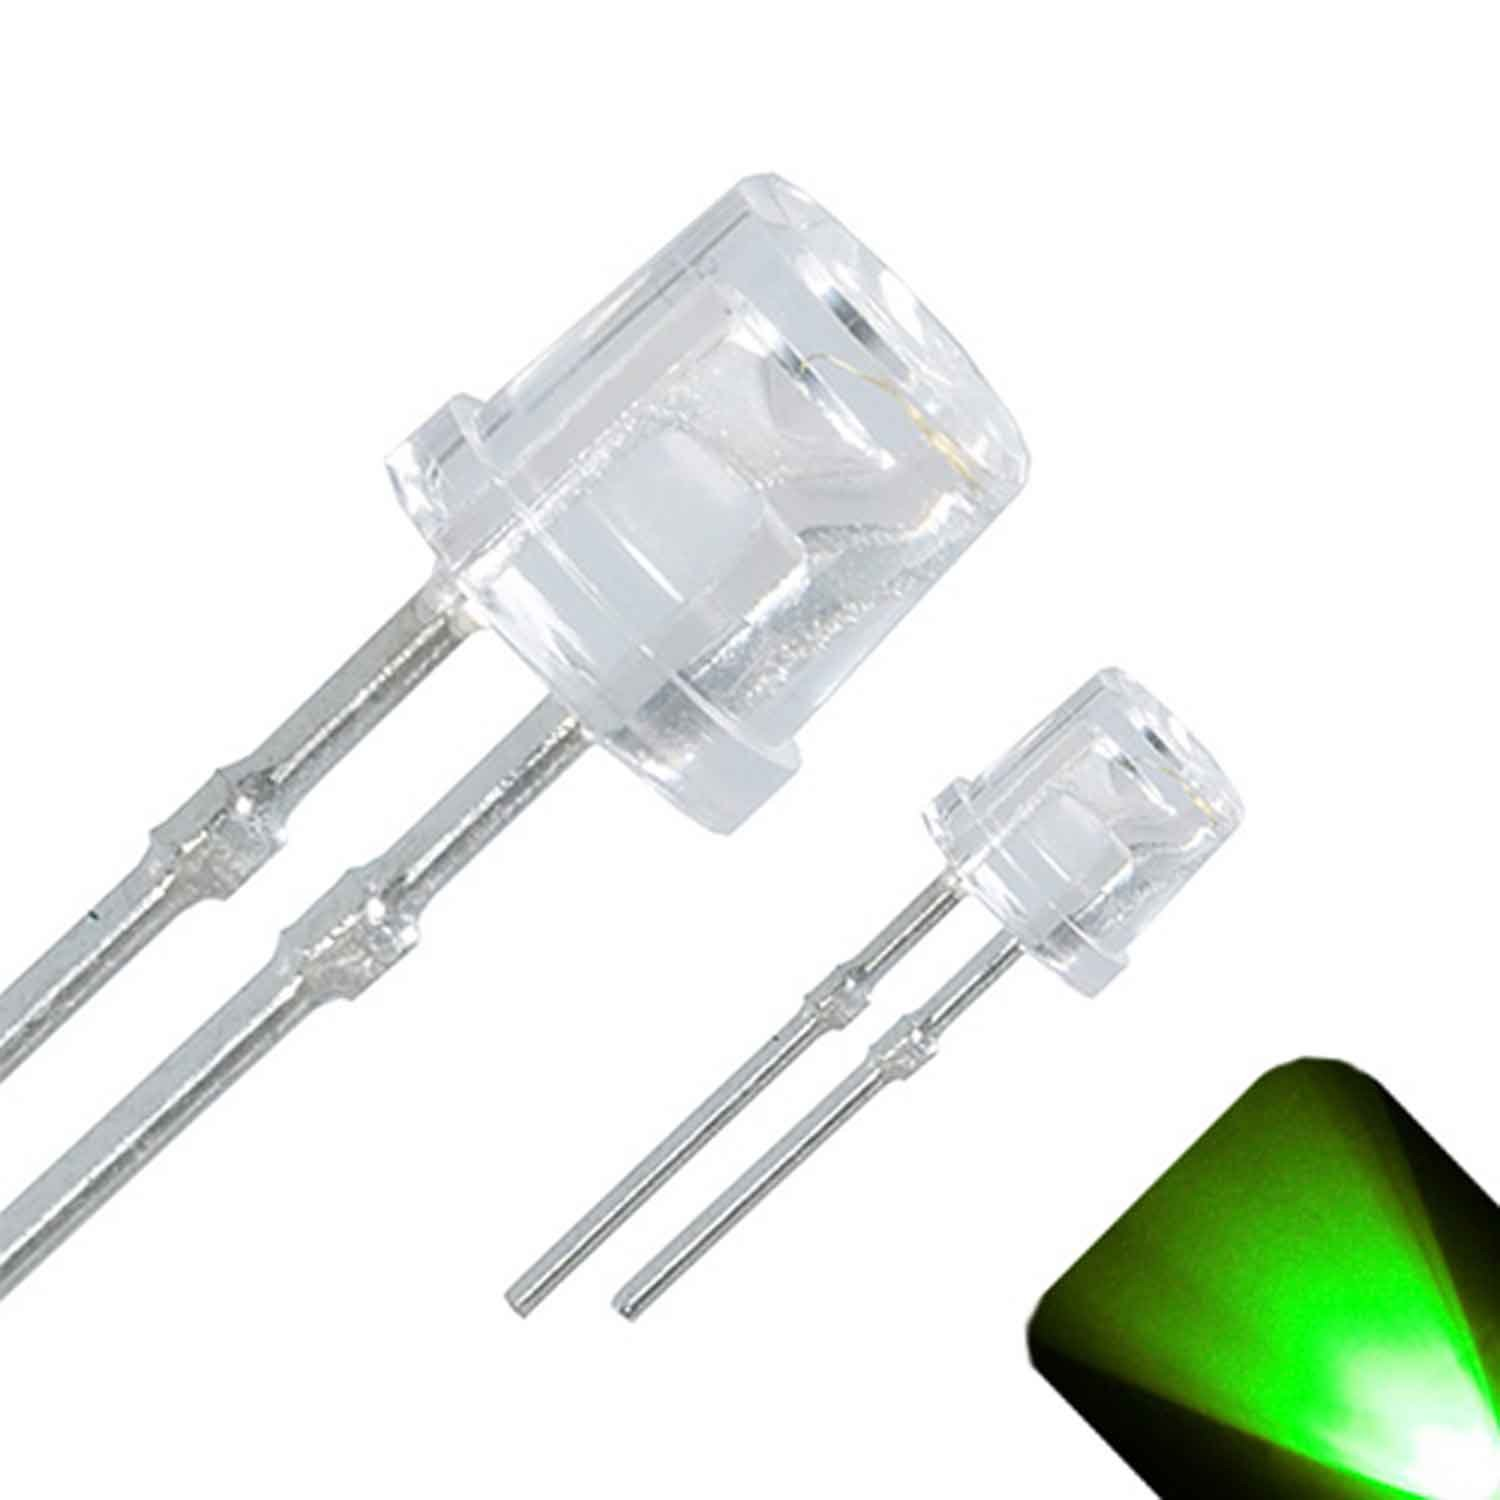 3mm Flat Top Wide Angle Pure Green LED - Ultra Bright (Pack of 20)